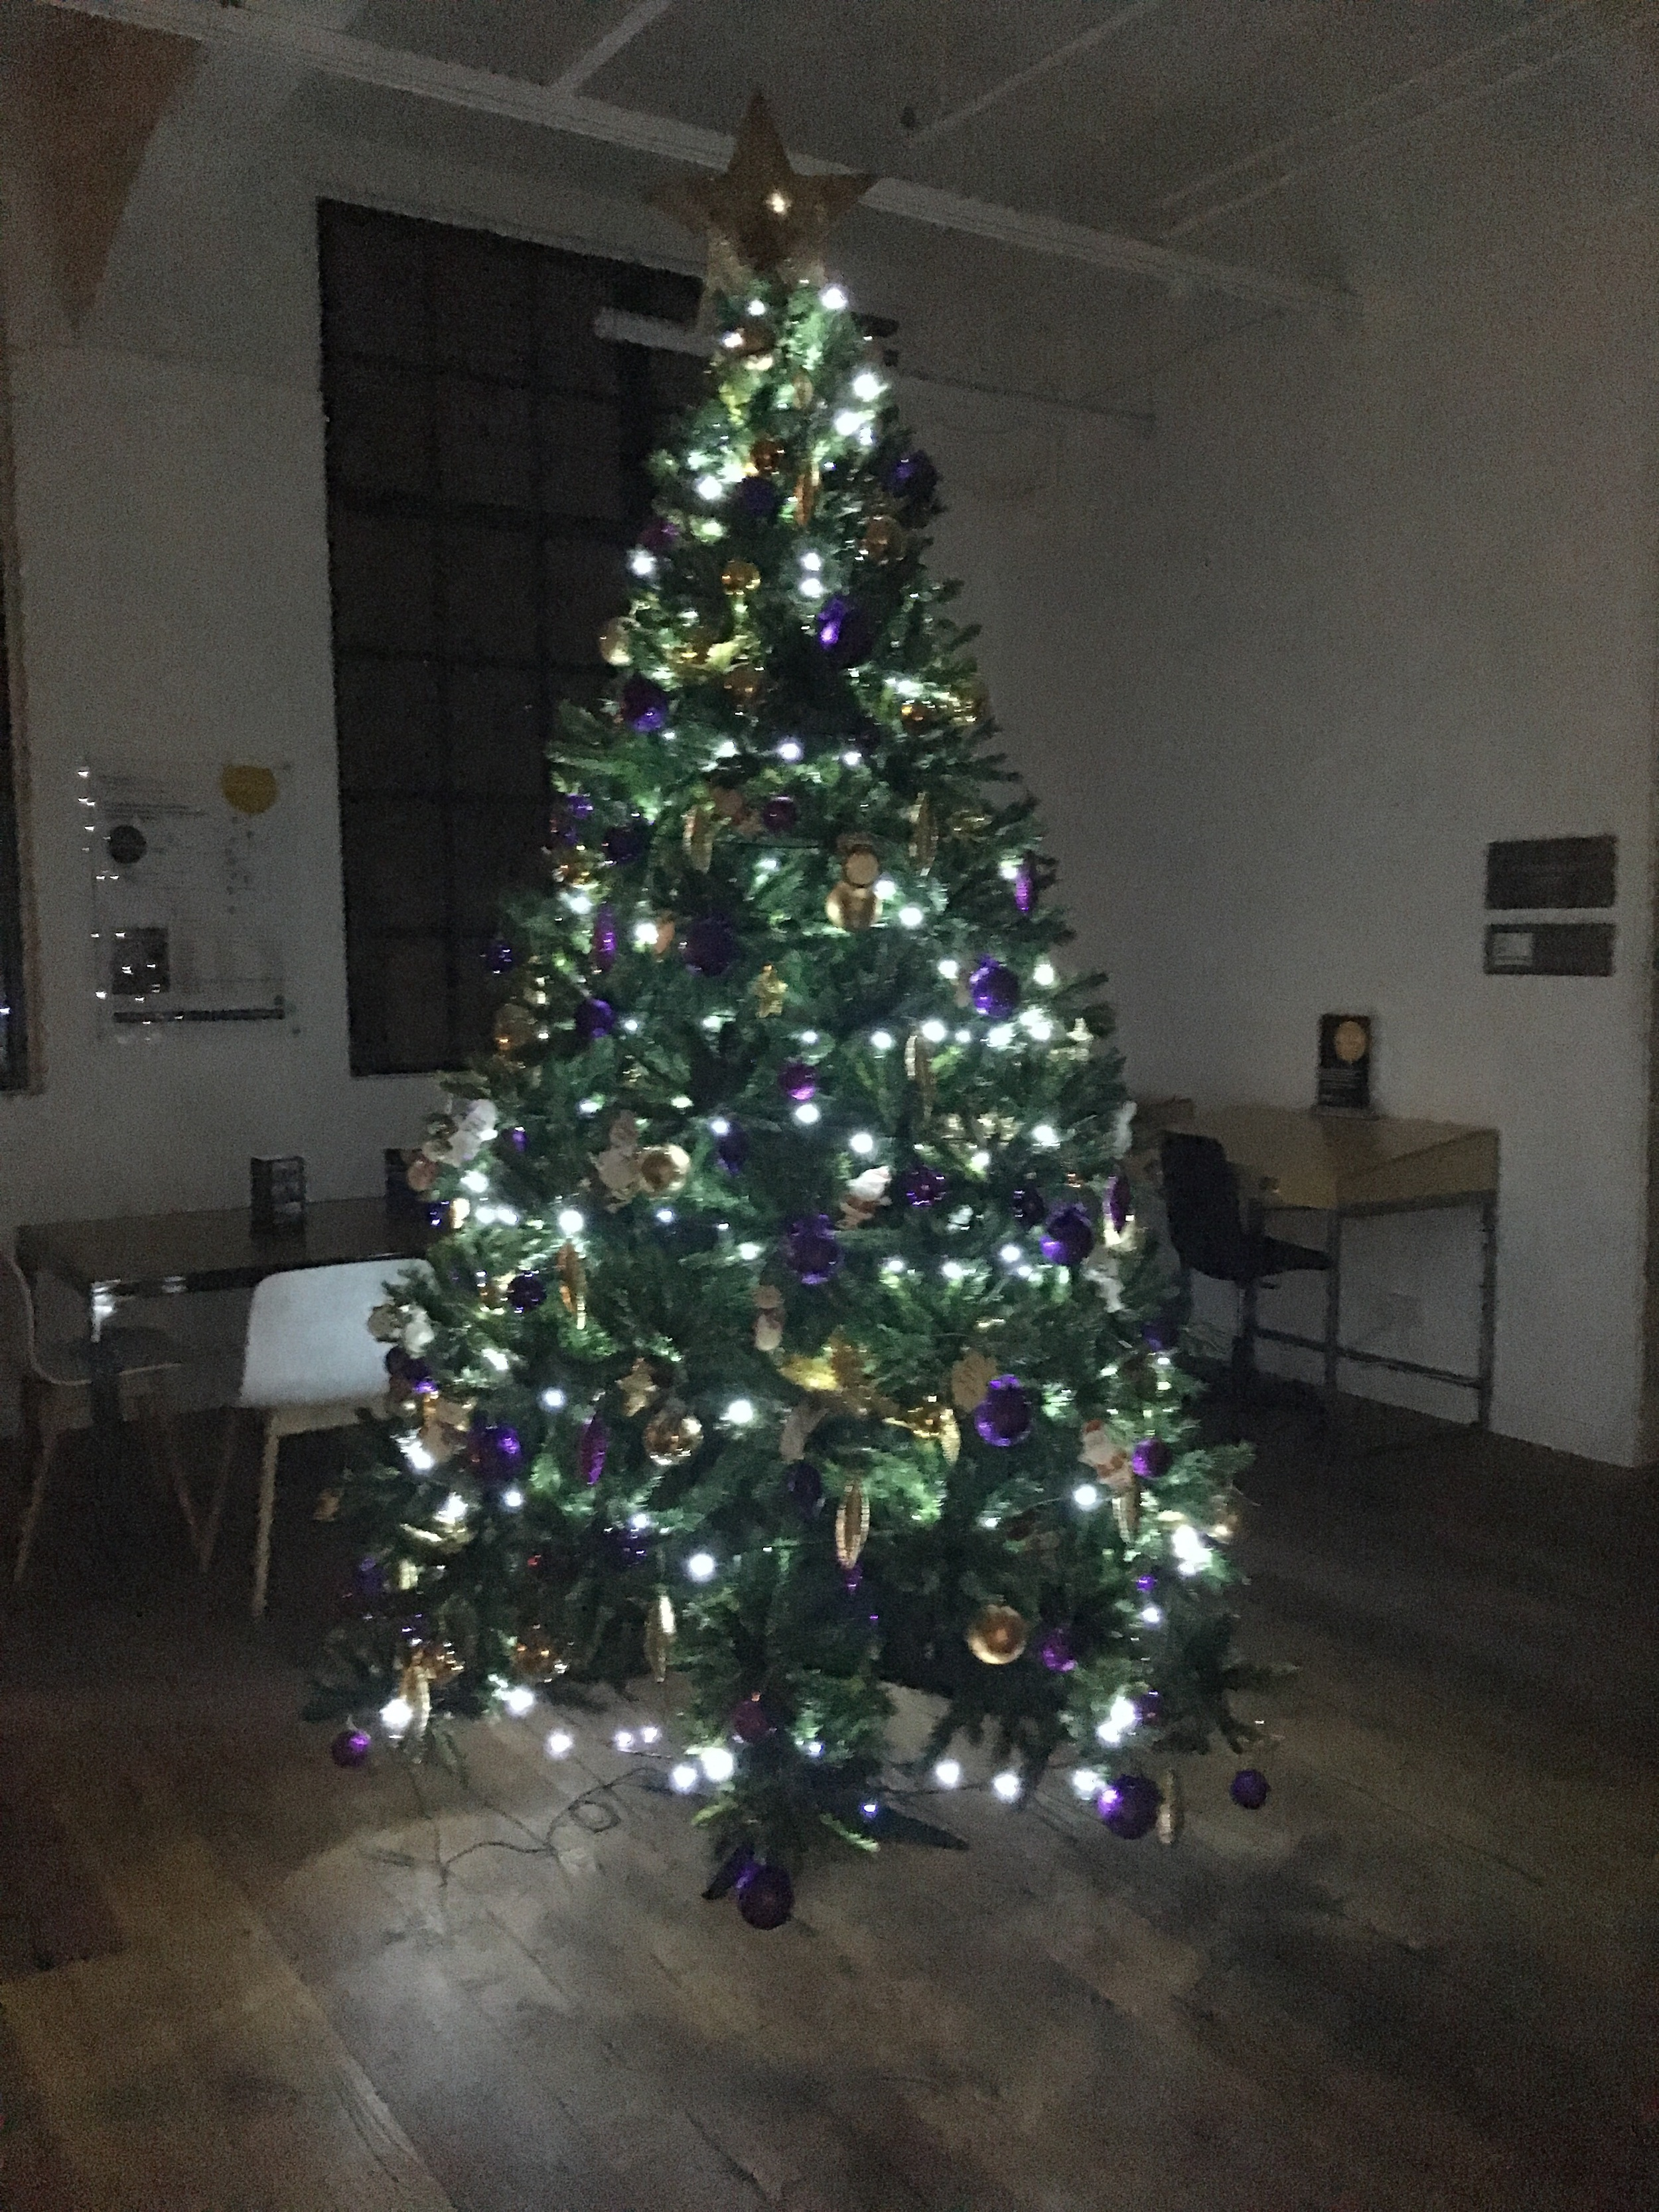 The Parkhall Business Centre's Tree of Hope for local children's centre